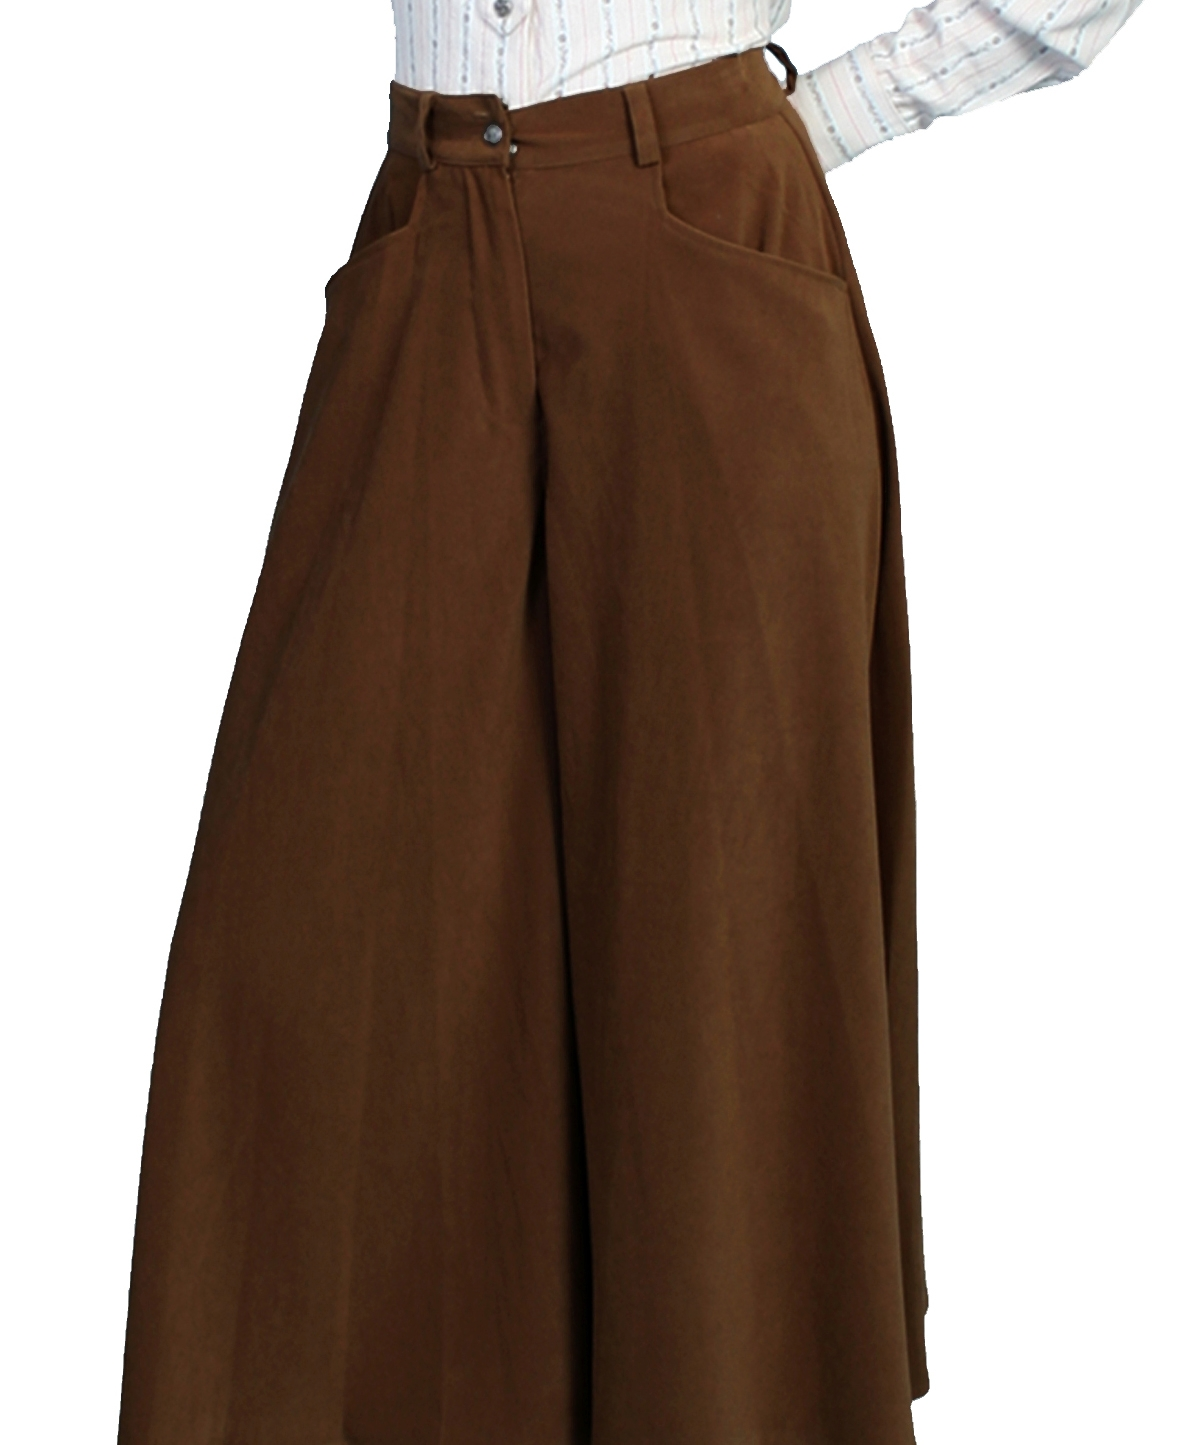 Scully Womens black split skirt riding pants, riding pants for women, western riding pants, split skirt western pants